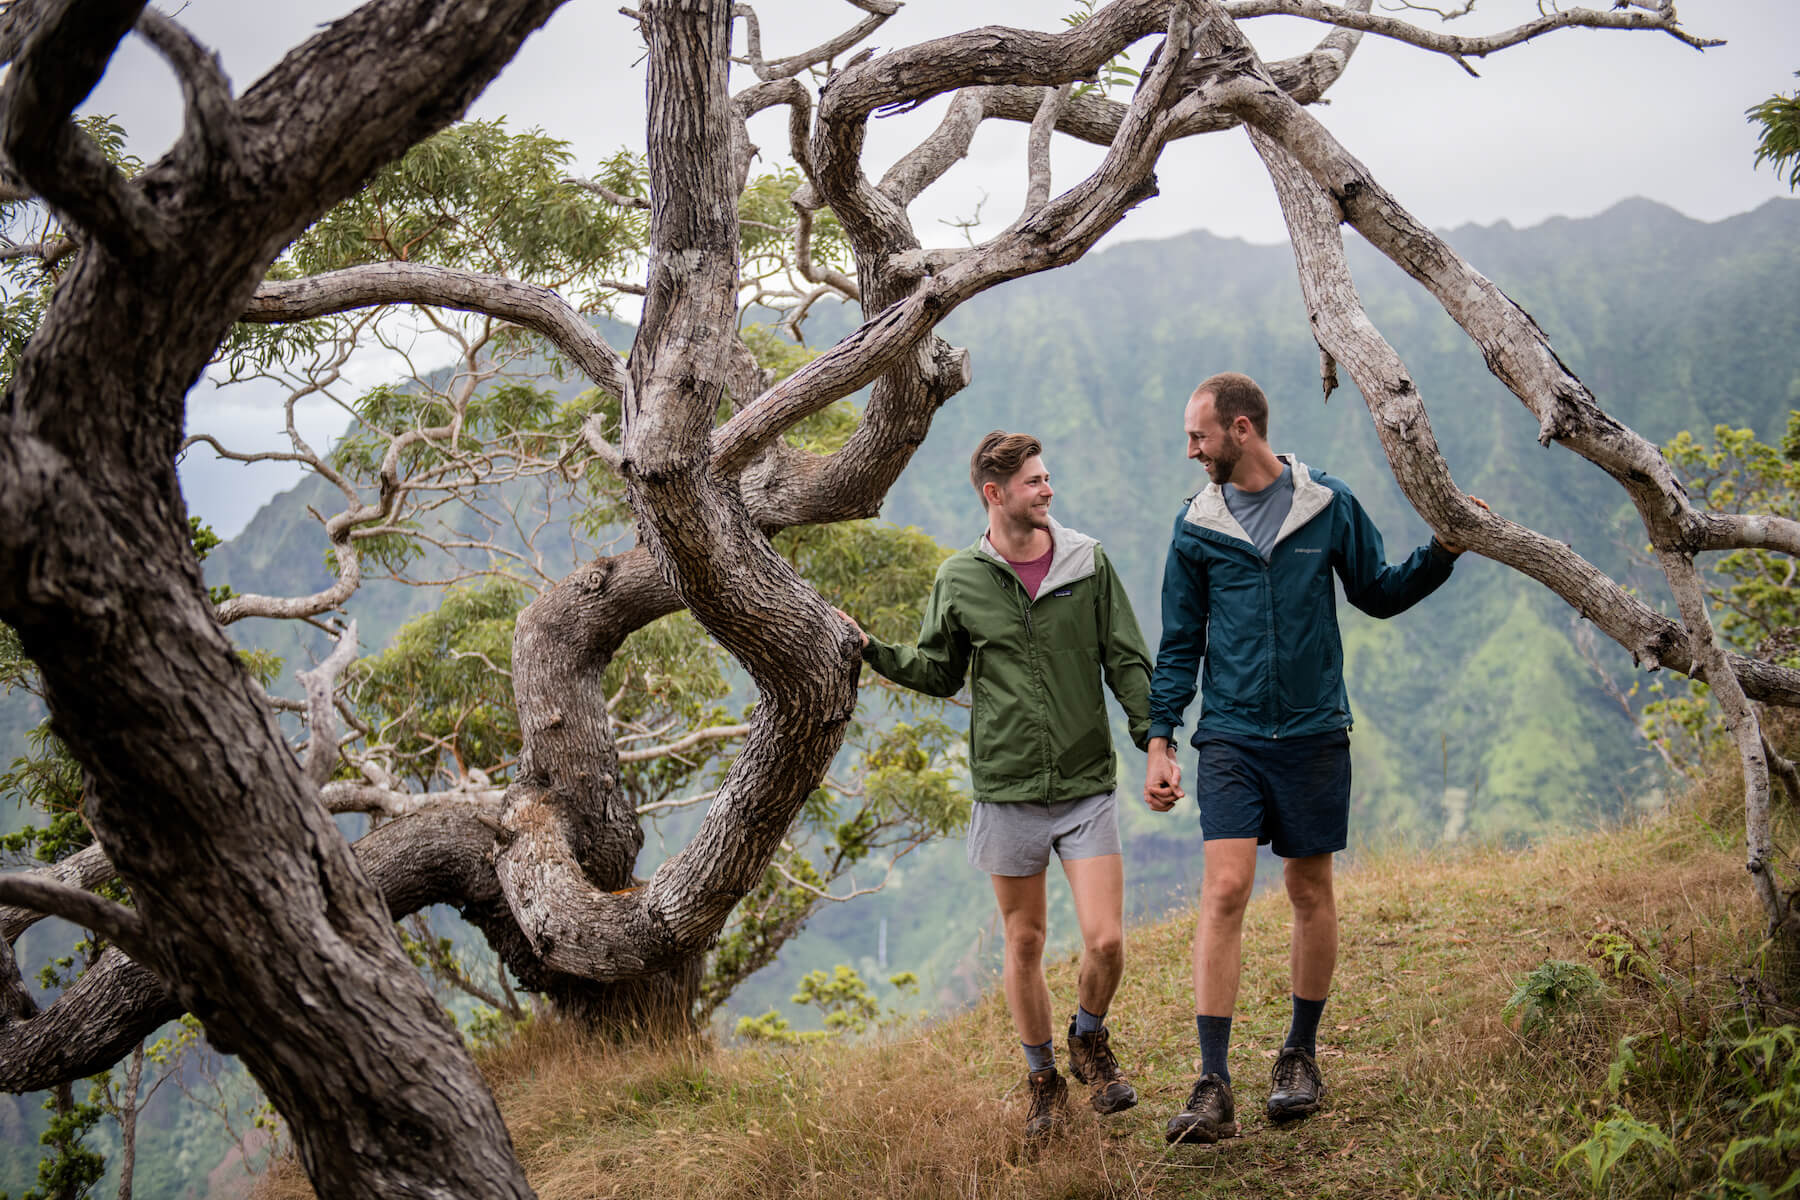 A man is proposing to a man while on a hike in Kauai. The one one man is kneeling. Both men are wearing hiking outfits.